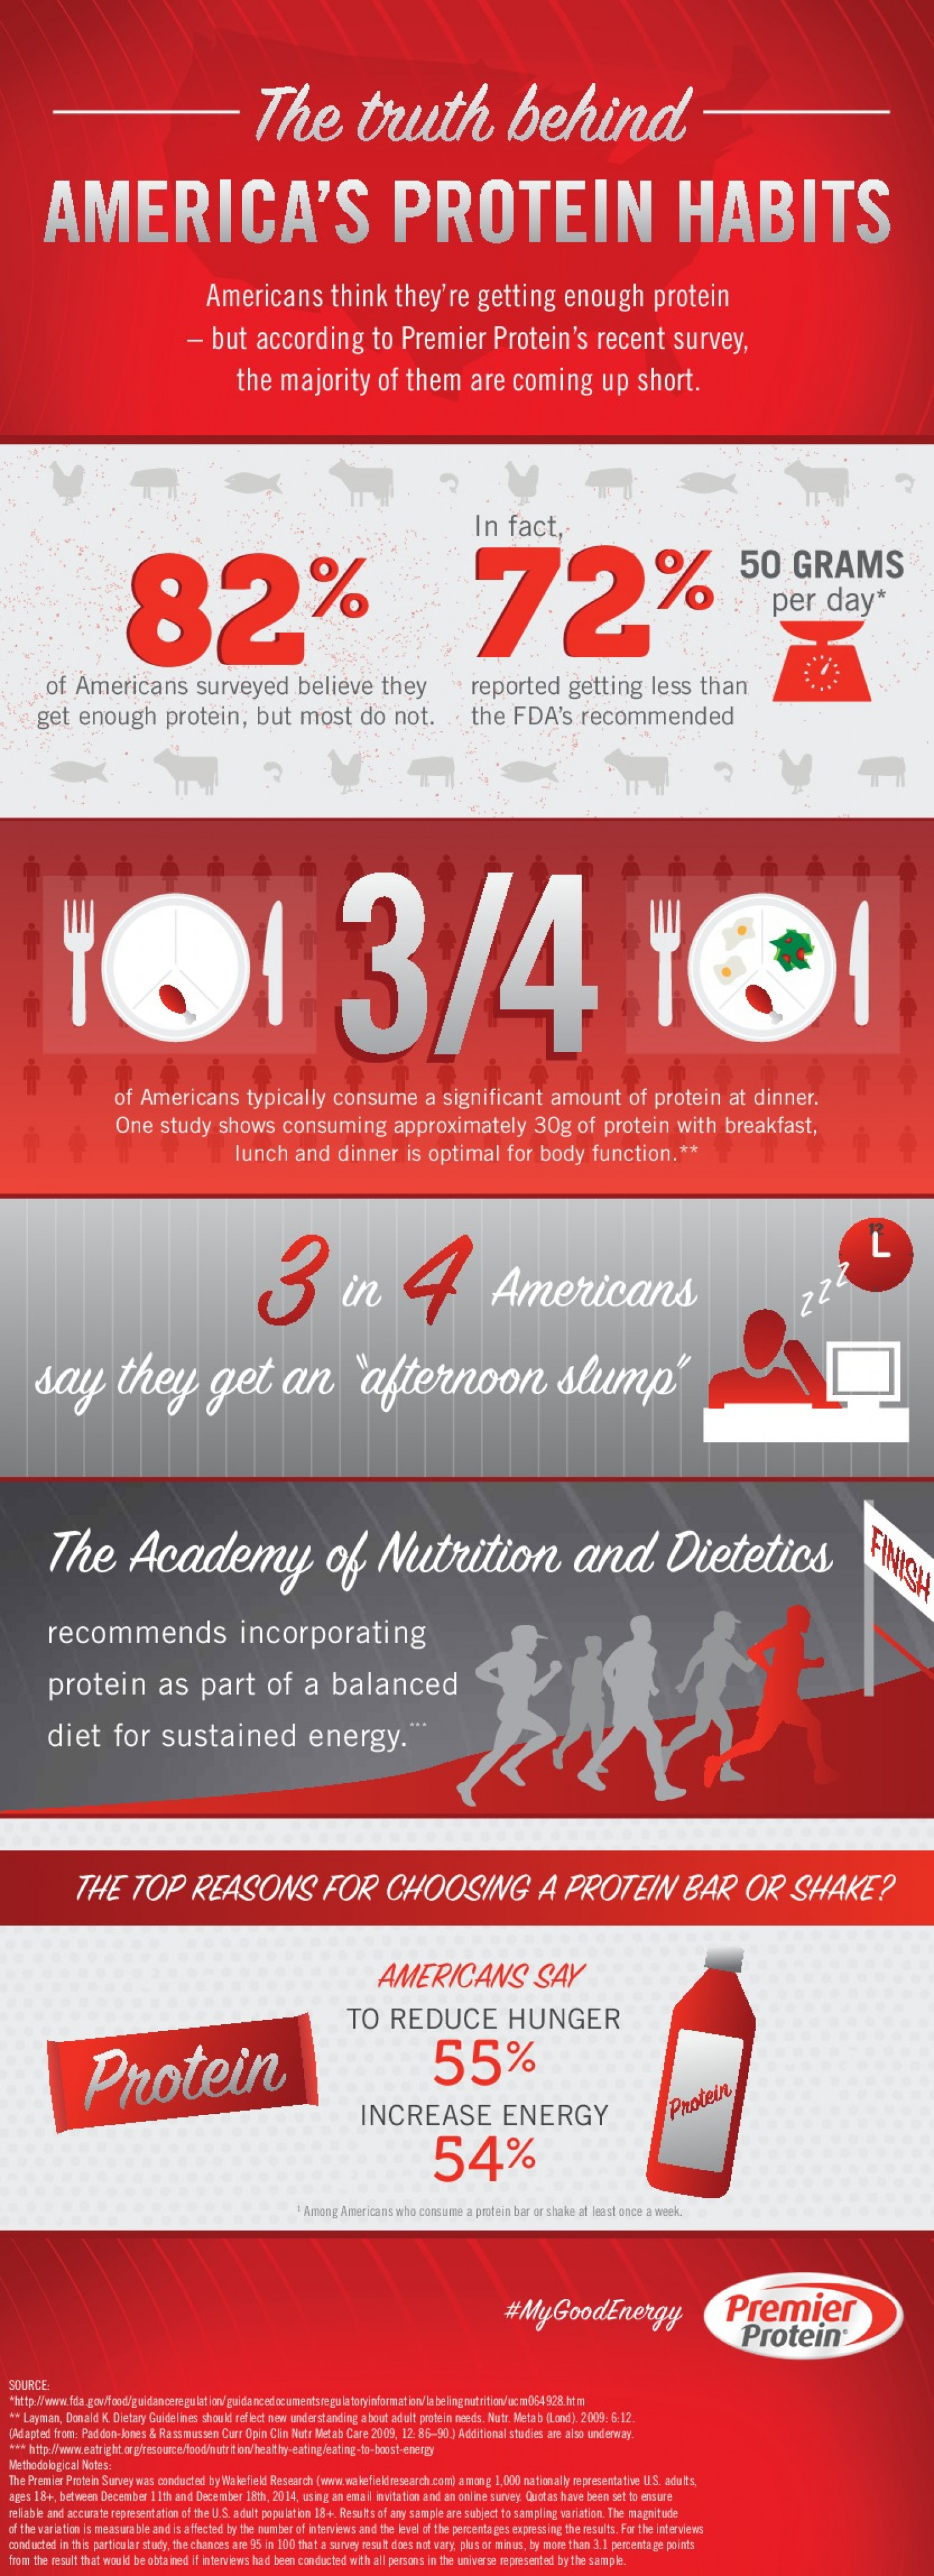 The Truth Behind America's Protein Habits Infographic